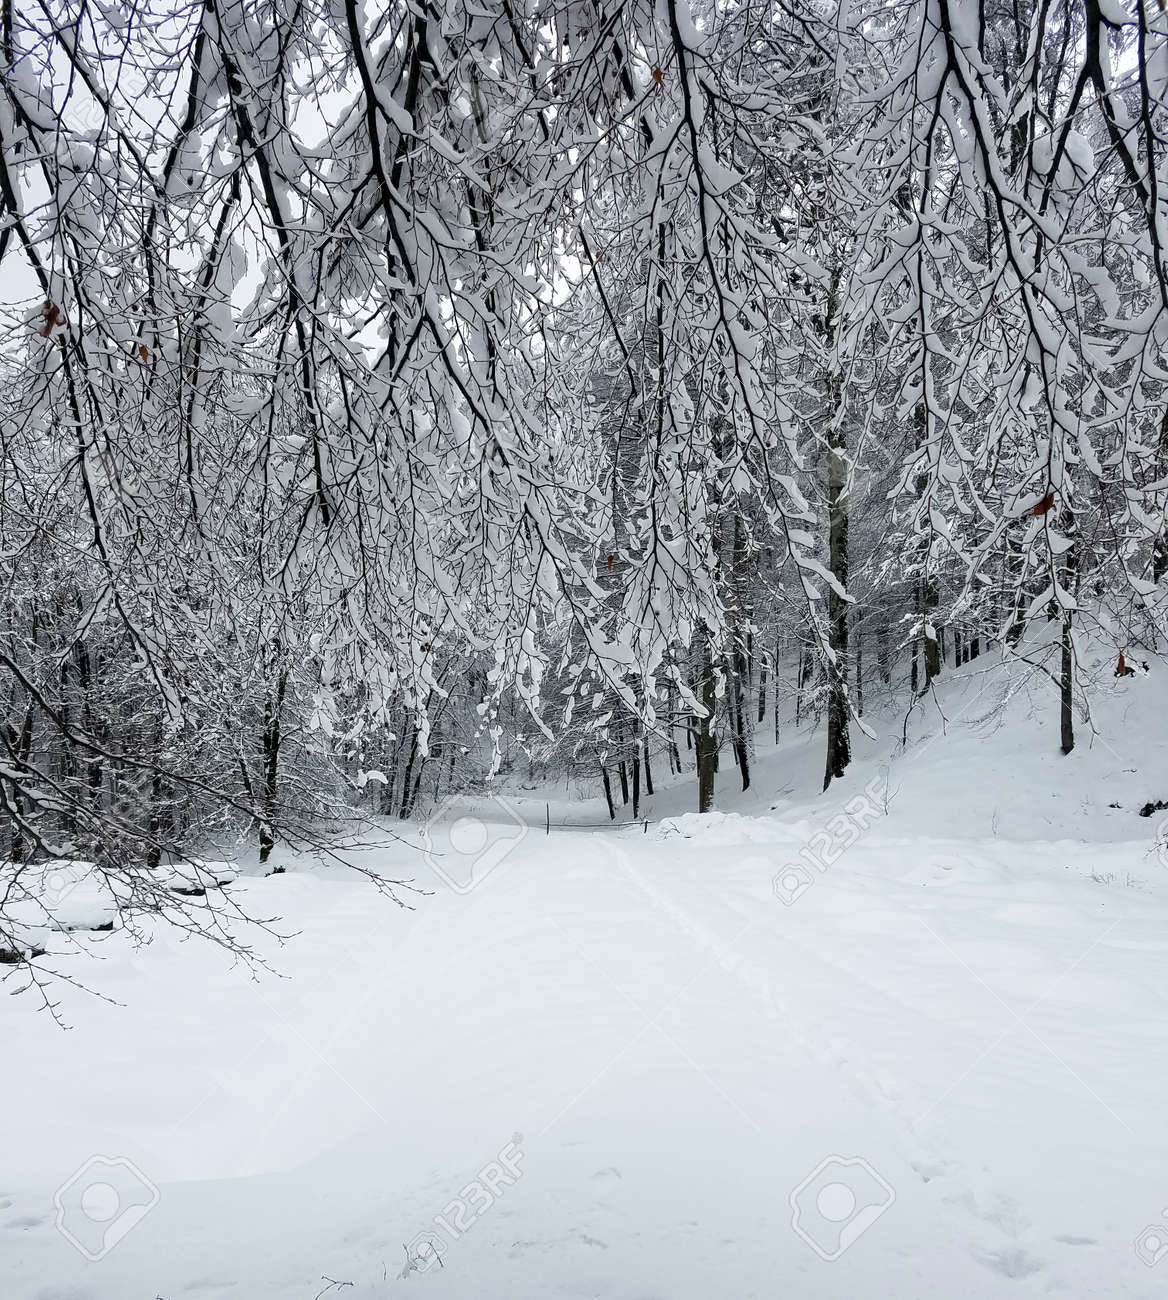 Frozen forest with tree branches and twigs covered in snow and ice for winter holiday backgrounds. - 129205395